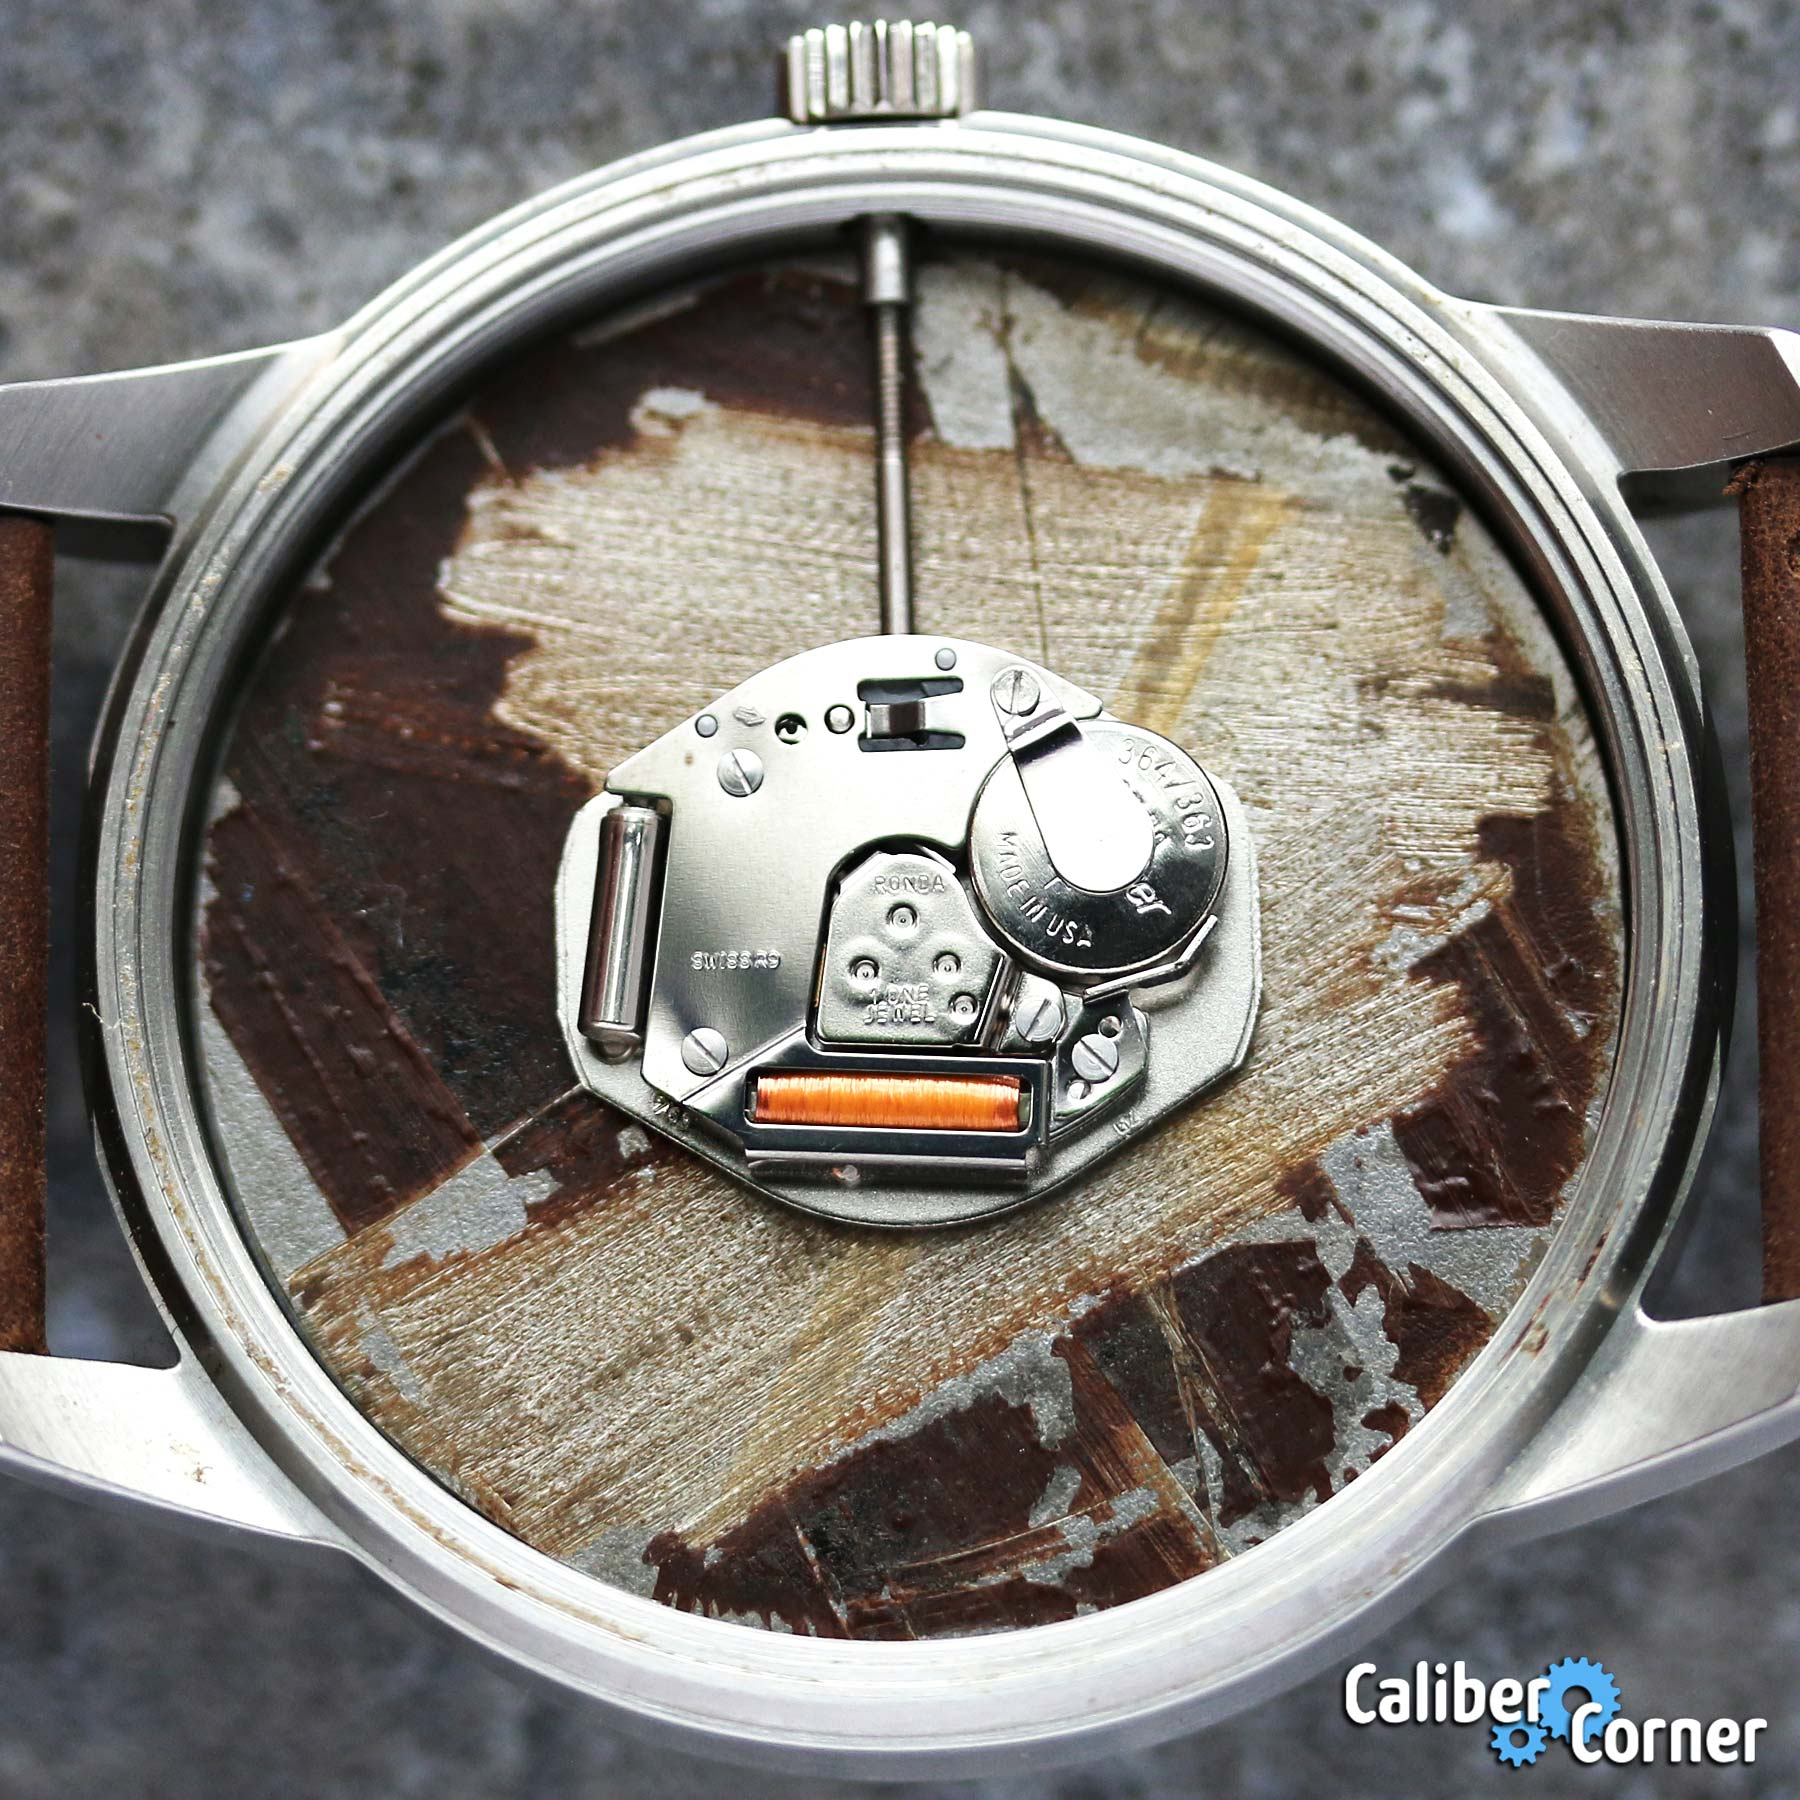 Ronda Caliber 763 Nickel